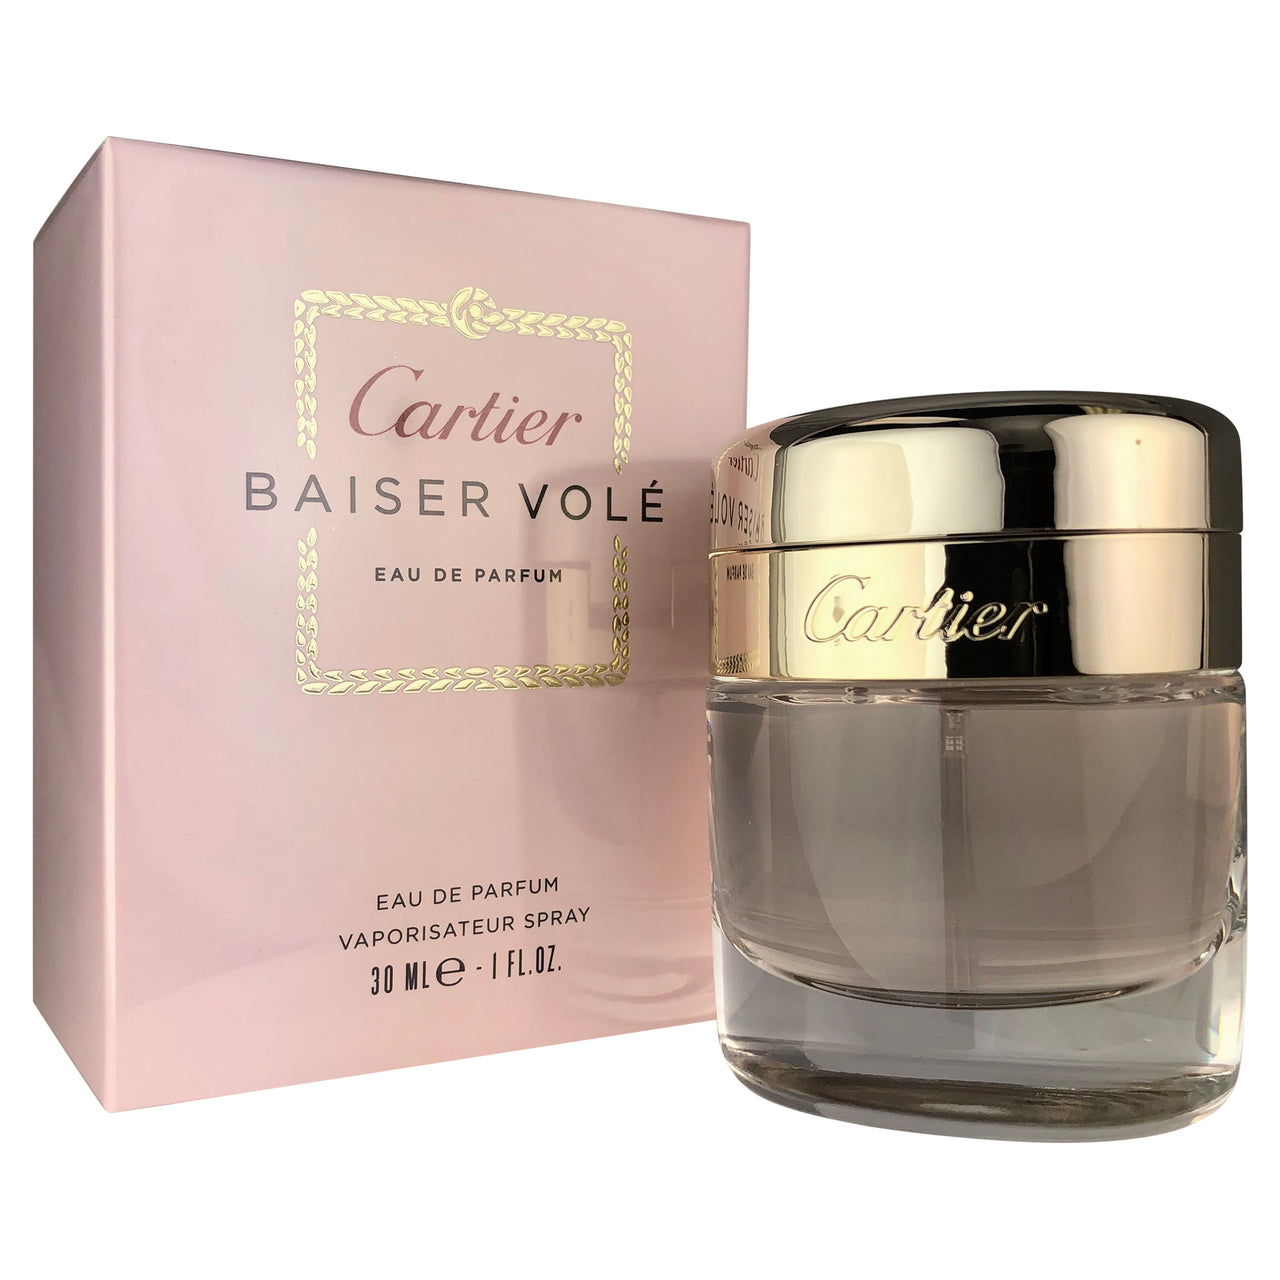 Cartier Baiser Vole For Women by Cartier 1.0 oz Eau De Parfum Spray